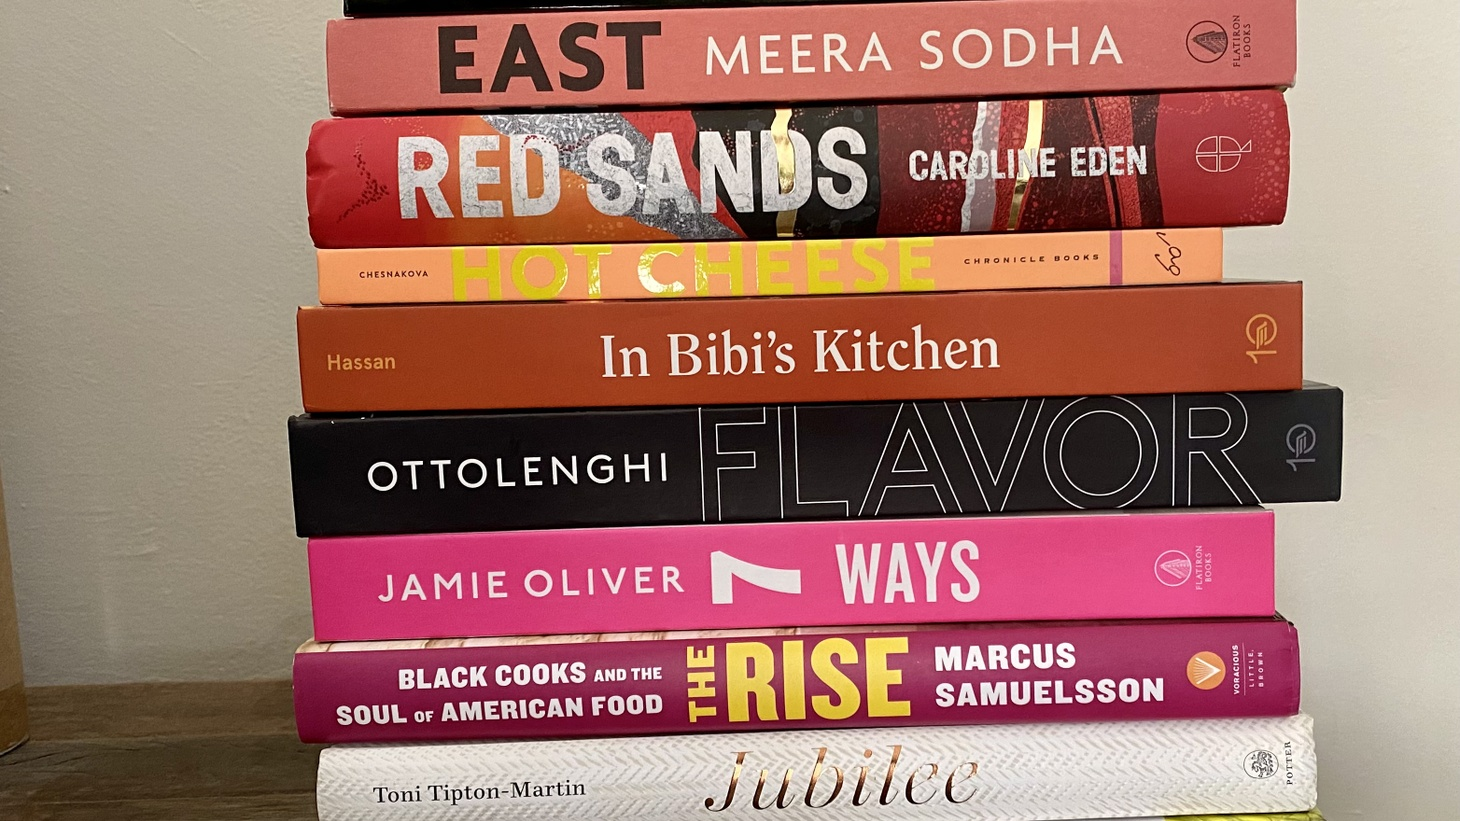 Bread, Black chefs, and comfort food were trends in cookbooks out this year.